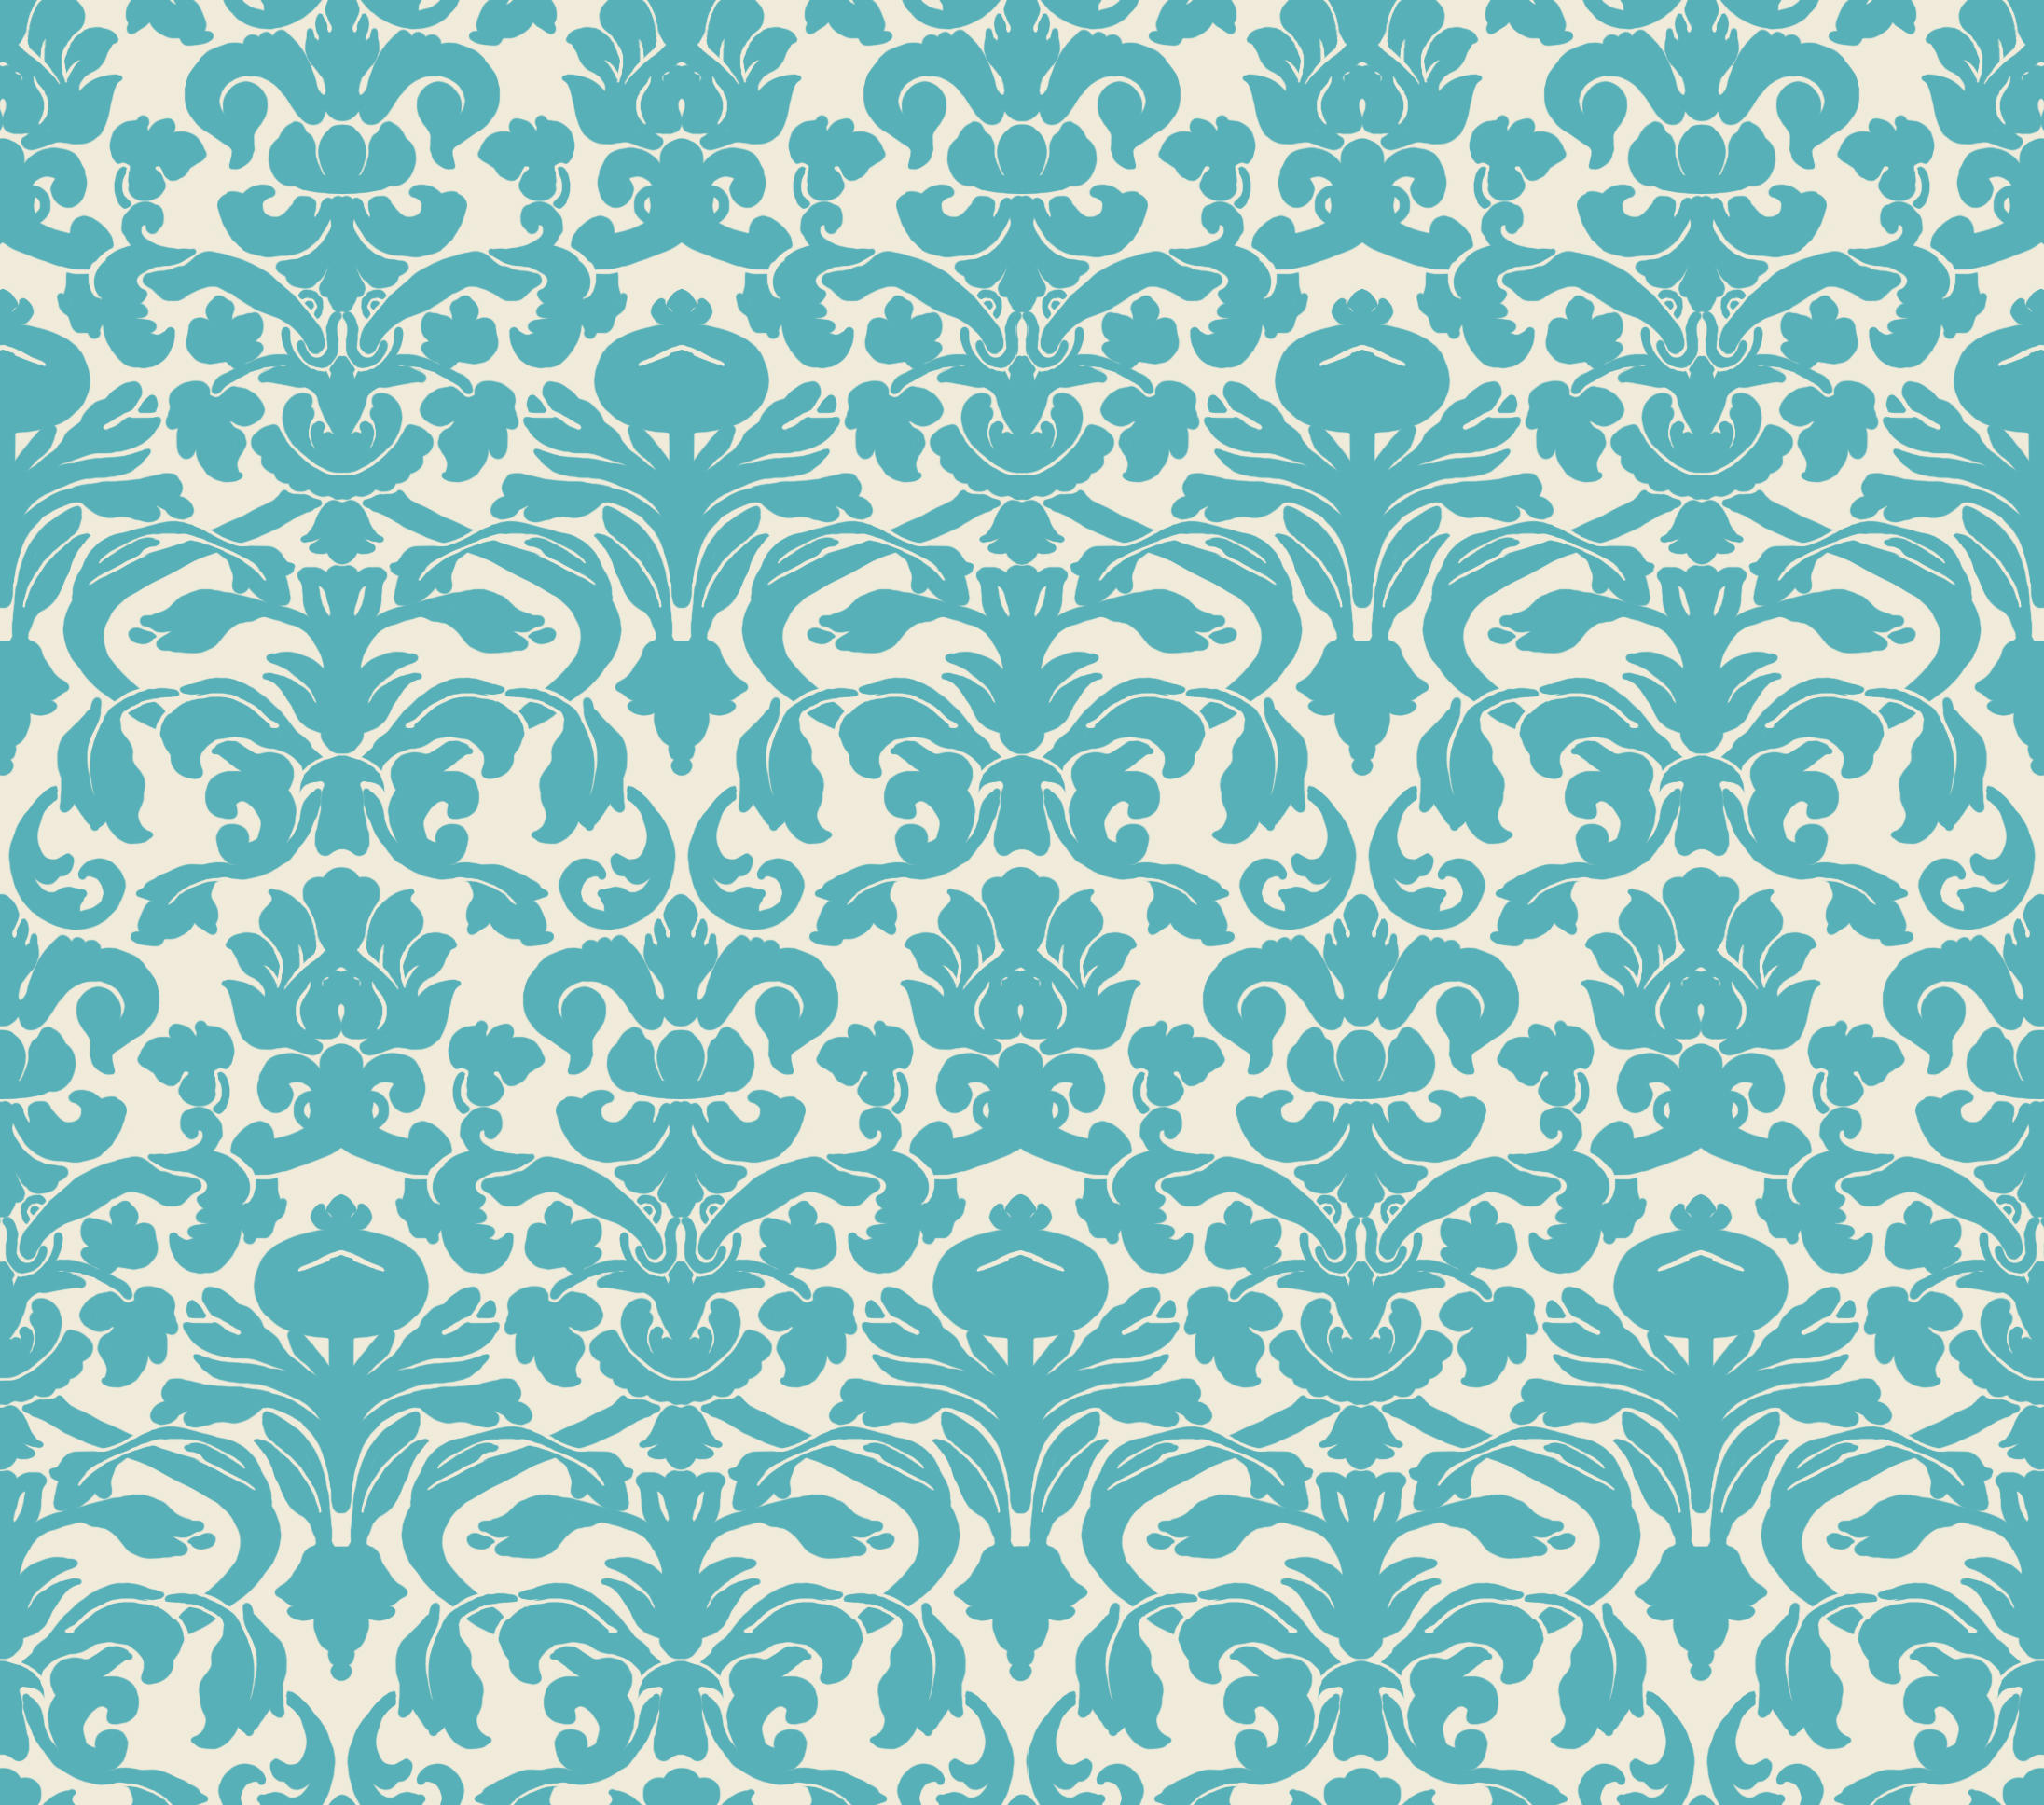 wallpapers and patterns on - photo #3